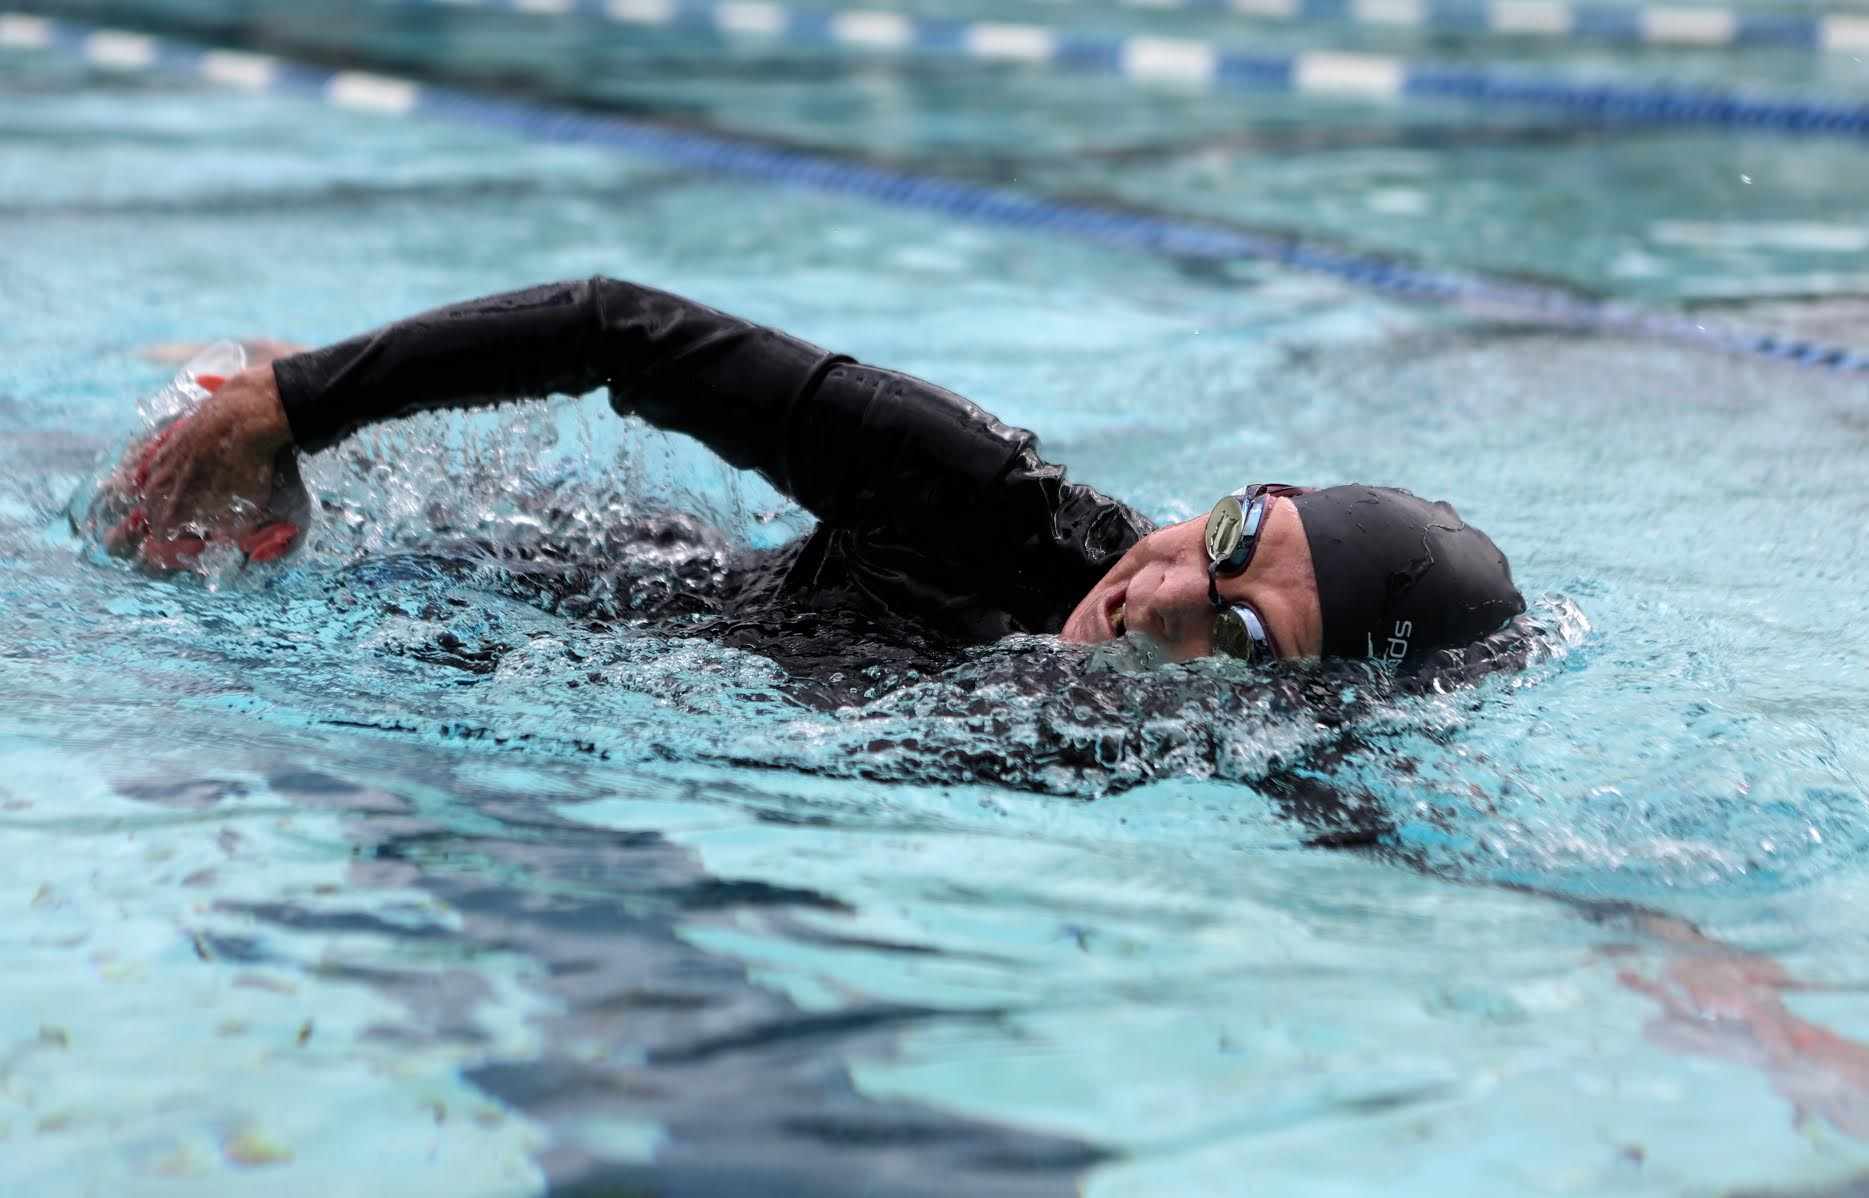 Joan Fischer, 82, swims in the YMCA pool on Monday. The 20-year member said she would cry if the center closes.